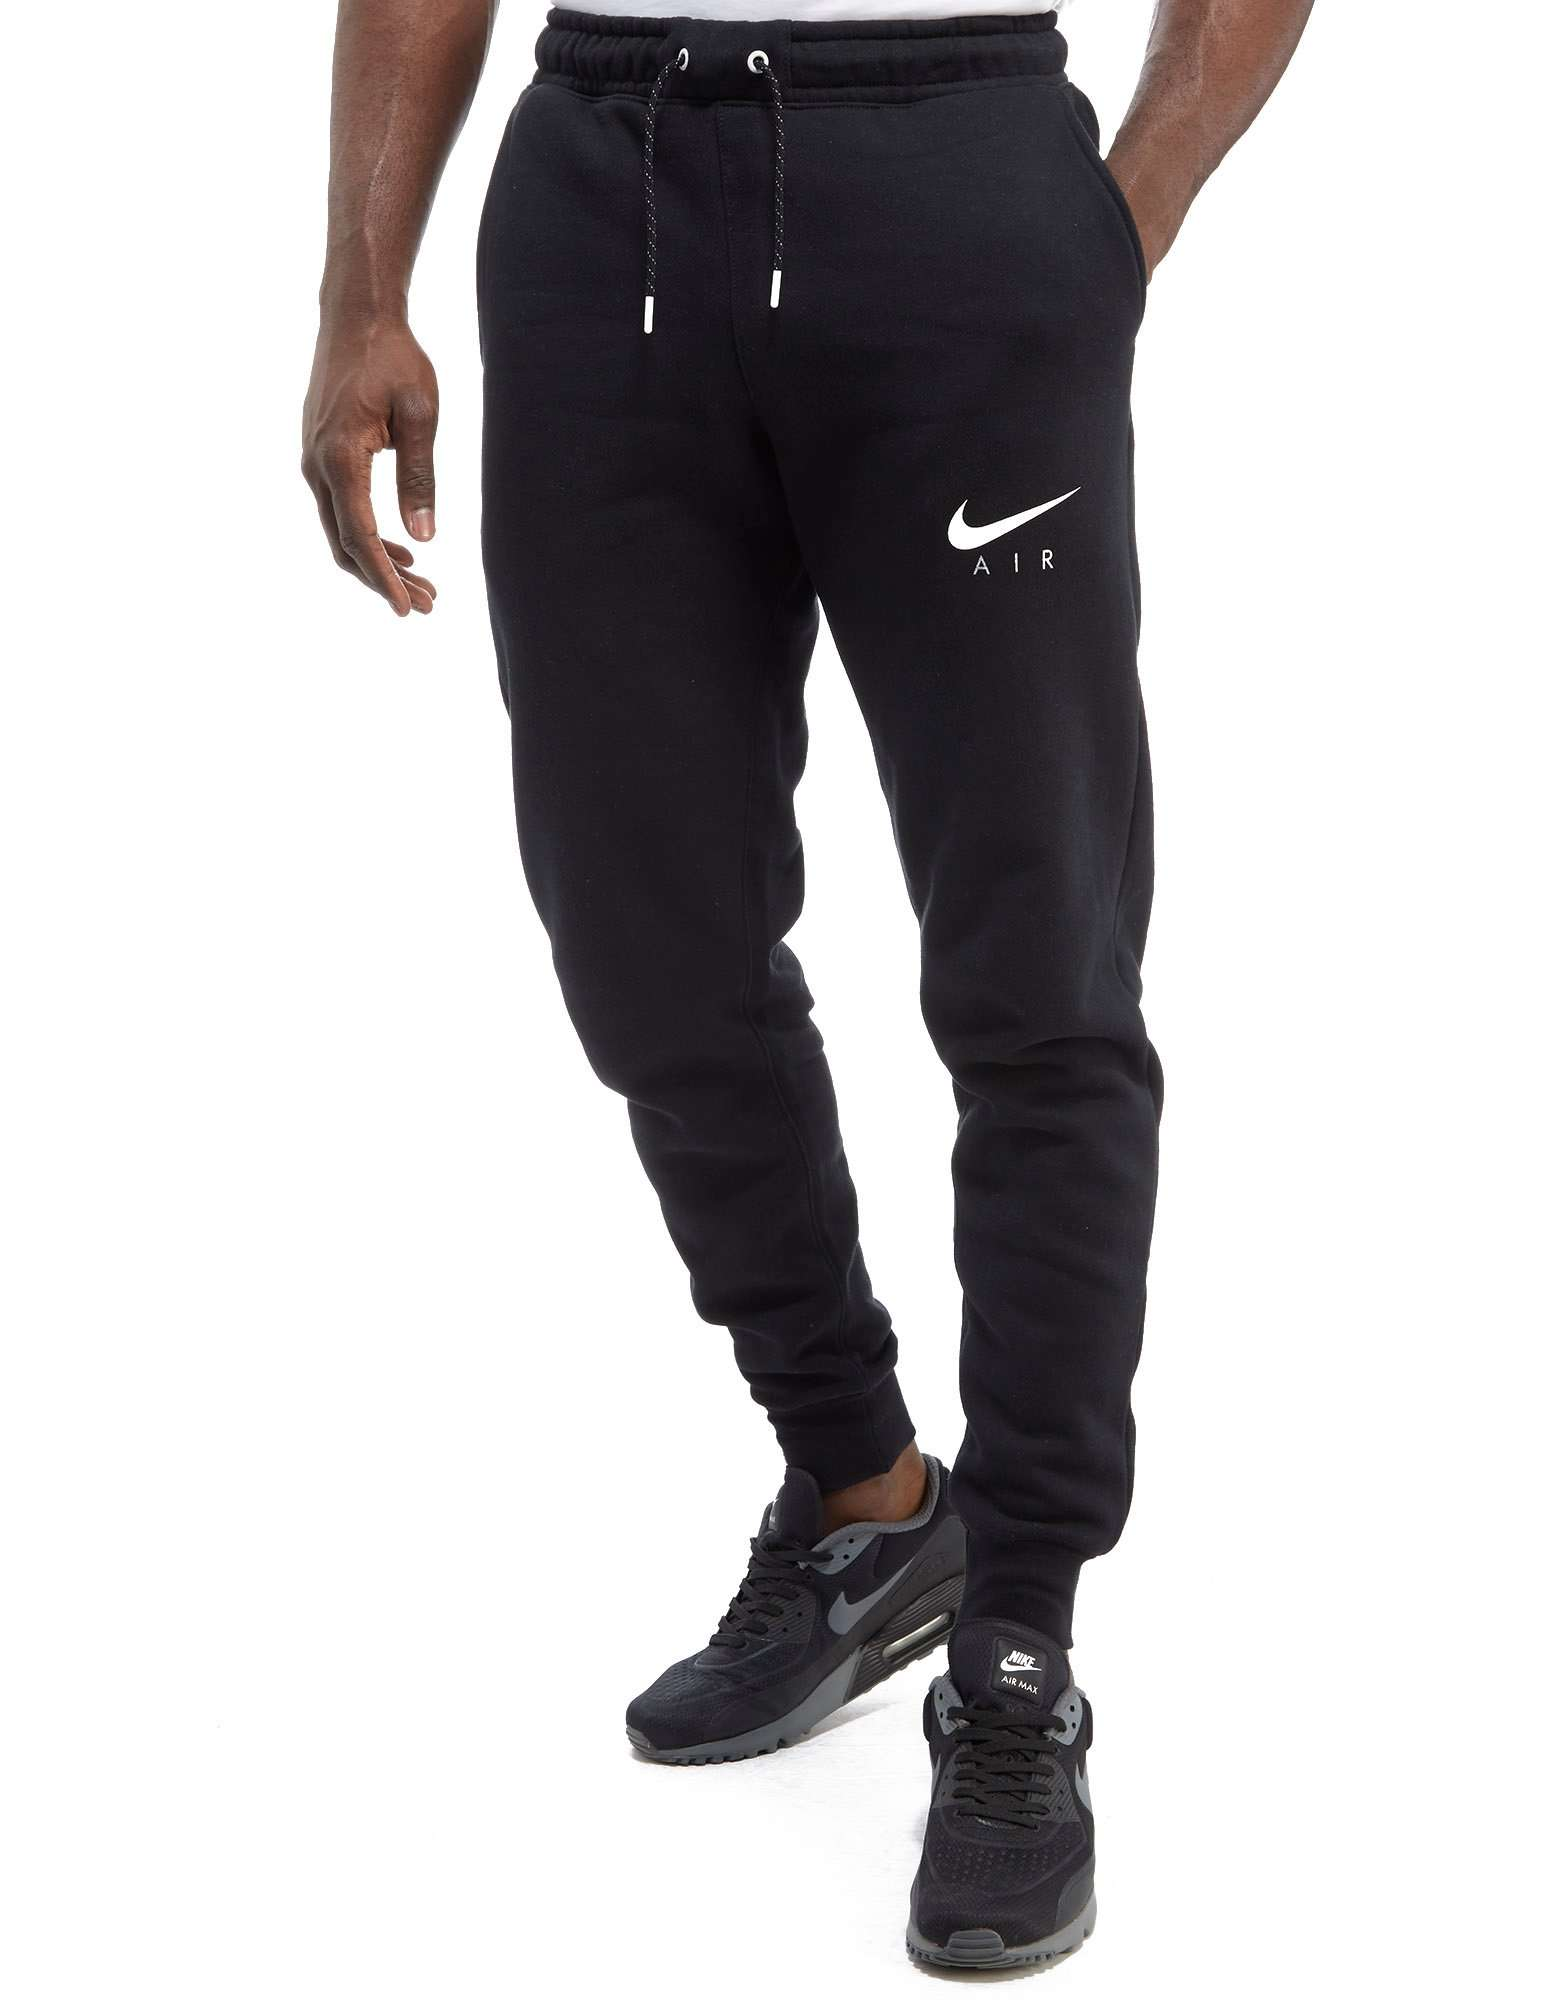 Find great deals on eBay for black sweatpants. Shop with confidence.